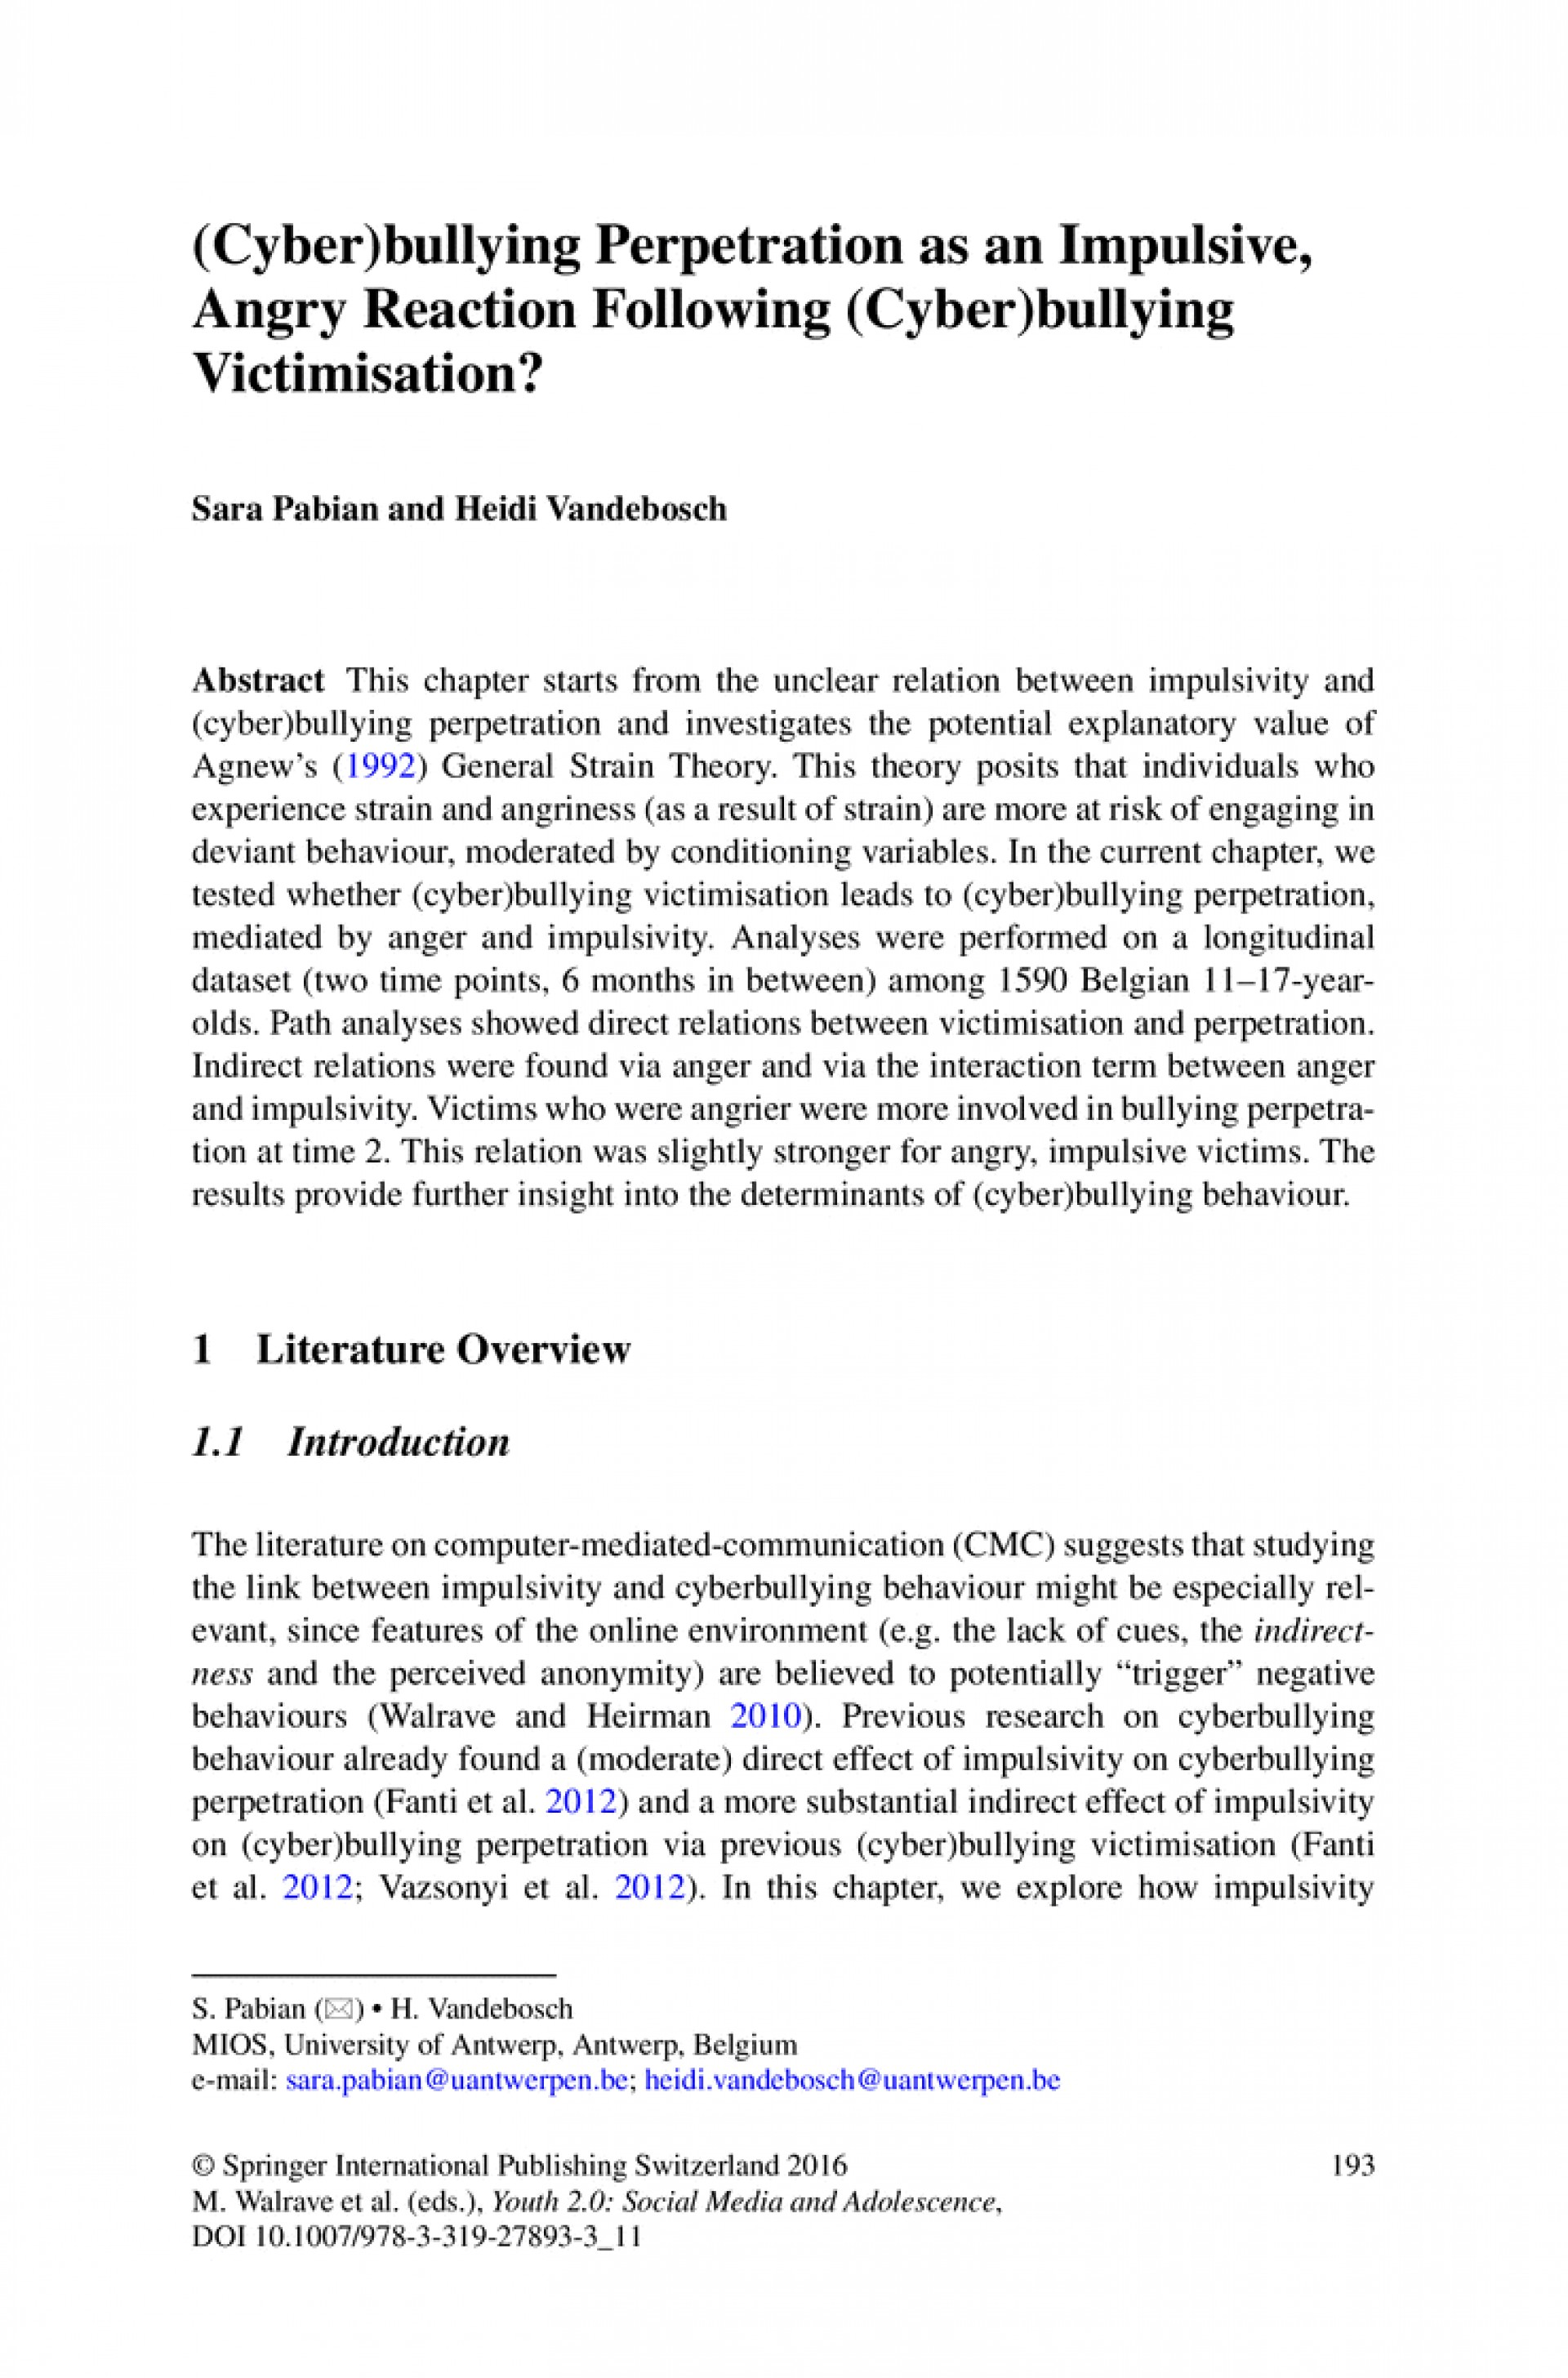 003 Research Paper Bullying Essays Cyberbullying Cover Letter20 Dreaded Conclusion 1920